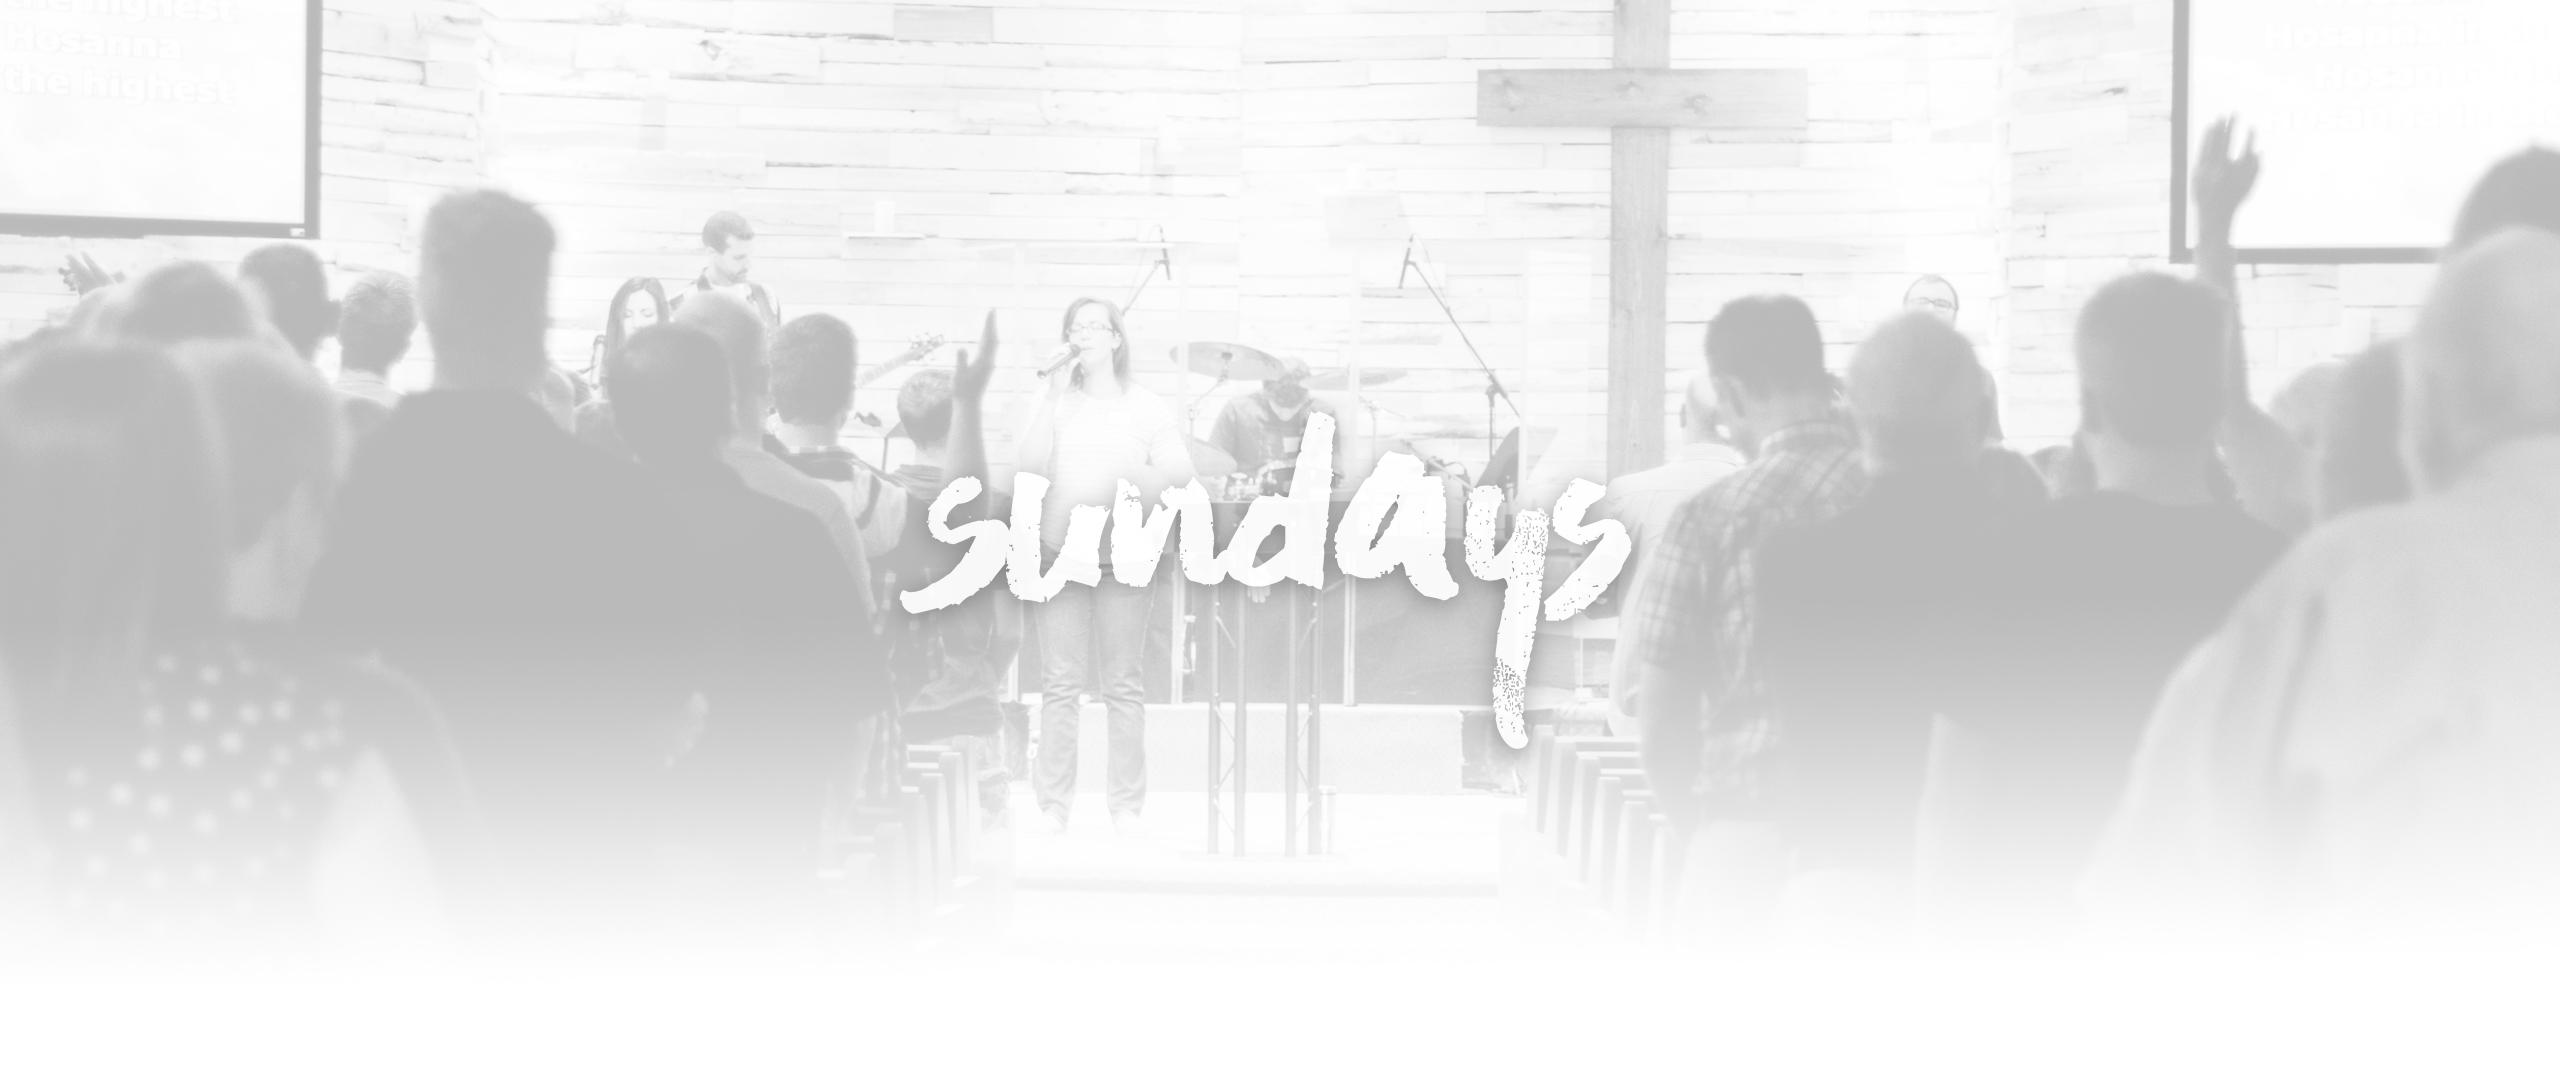 JOIN US AT 9 OR 11AM! Find Out More